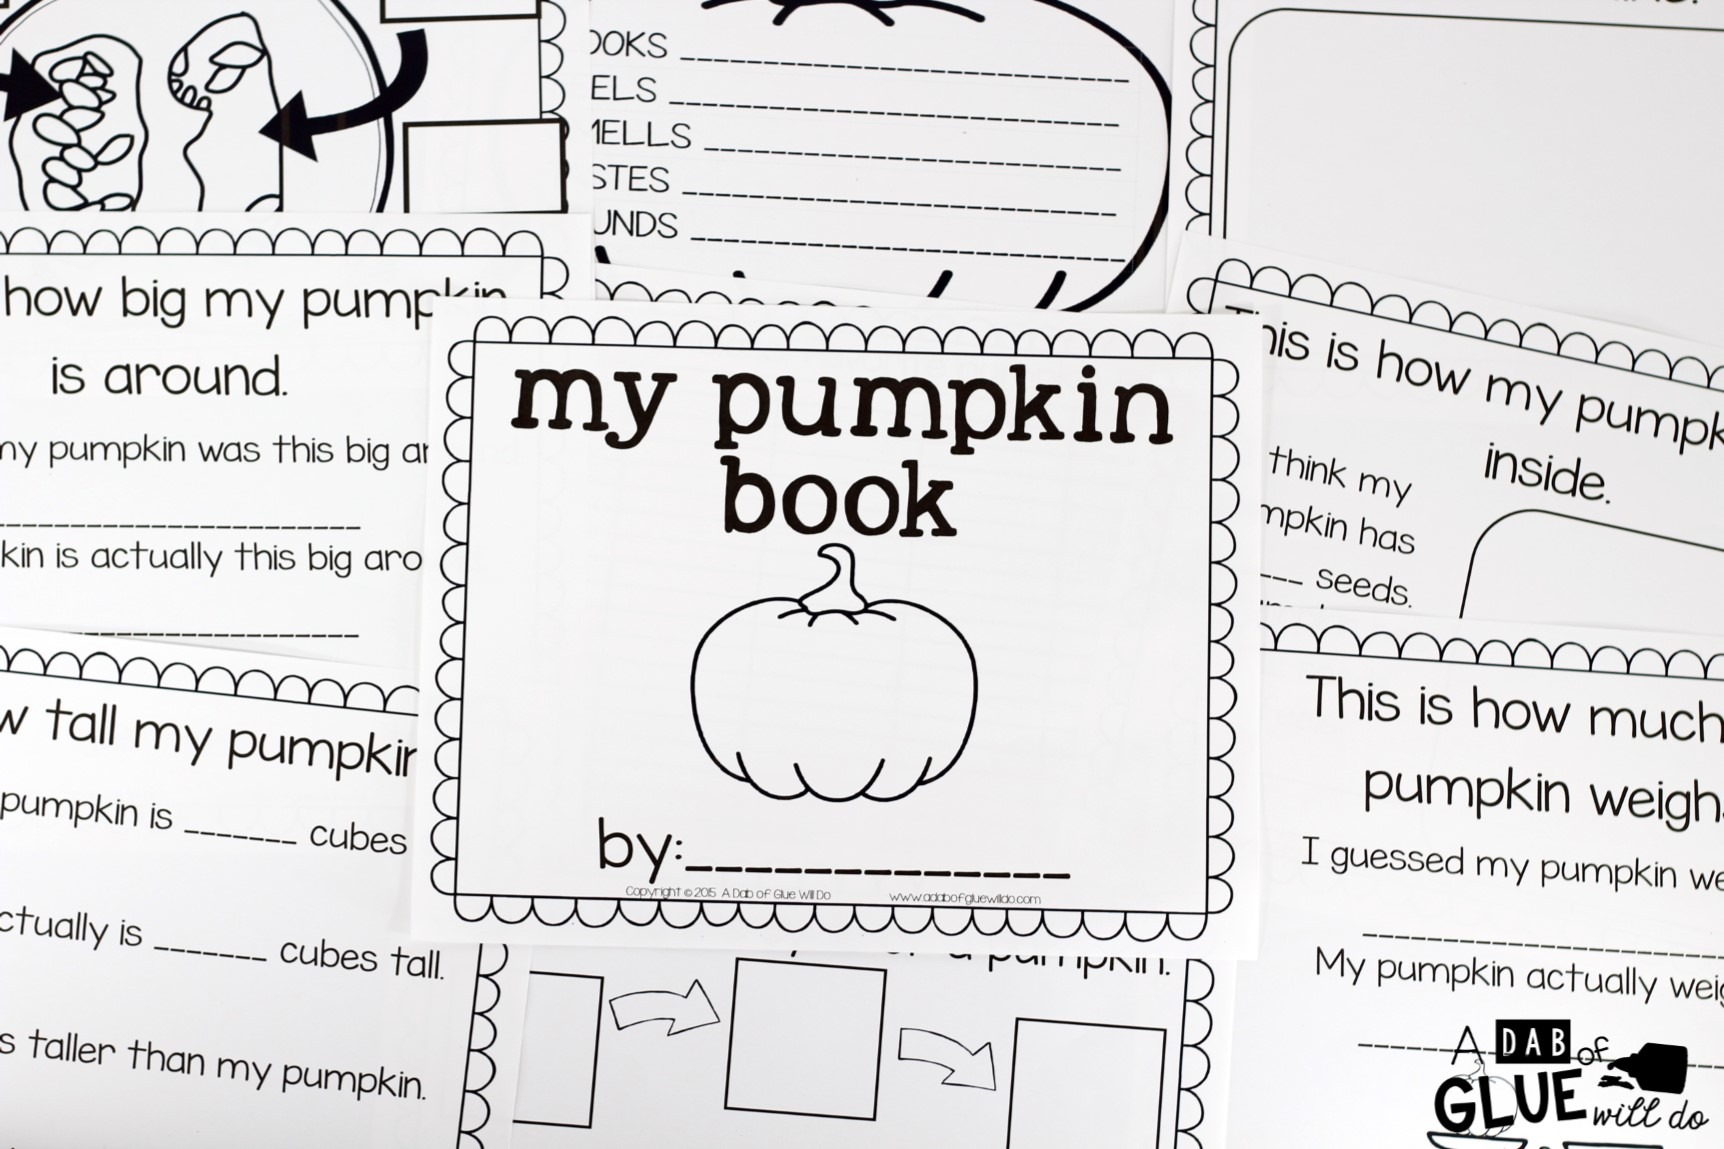 Engage your class in an exciting hands-on experience learning more about pumpkins! This Pumpkin Bundle is perfect for centers in Kindergarten, First Grade, and Second Grade classrooms and packed full of inviting student activities. Celebrate Fall with pumpkin themed center student worksheets. Students will learn more about pumpkins using puzzles, worksheets, clip cards, subtraction mats and more! This pack is great for homeschoolers, hands-on kids activities, and to add to your unit studies! Teachers will receive the complete unit for Autumn pumpkin math, science, and literacy activities to help teach about pumpkins to your lower elementary students!